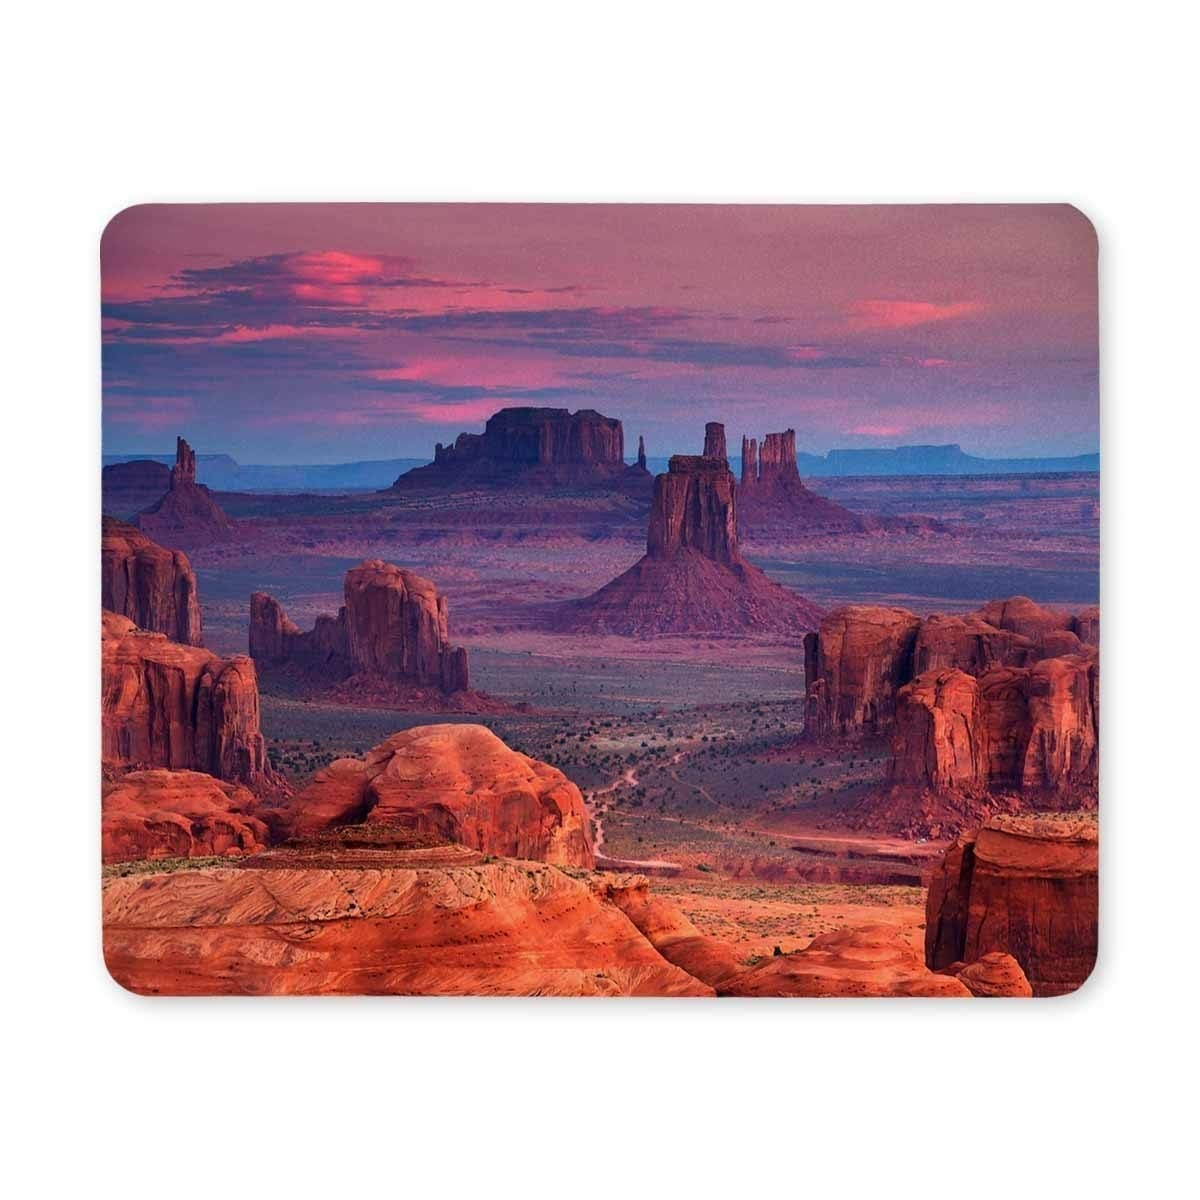 Amazon.com : BGLKCS Gaming Mouse pad, Mouse Pad Sunrise in ...